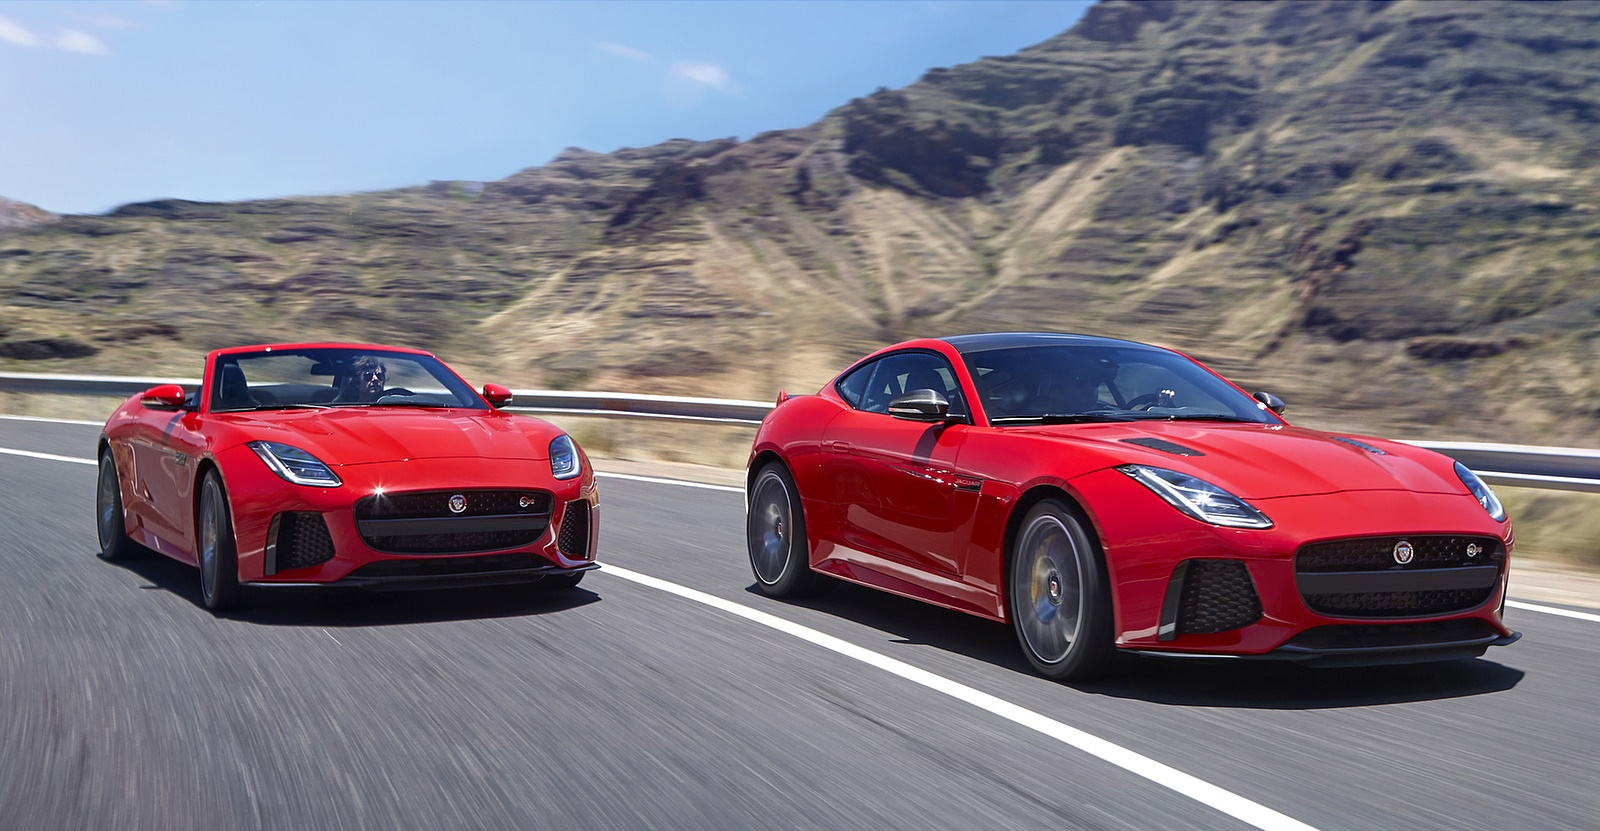 2018 Jaguar F-TYPE SVR Coupe and Convertible Front Three-Quarter Wallpapers (1)